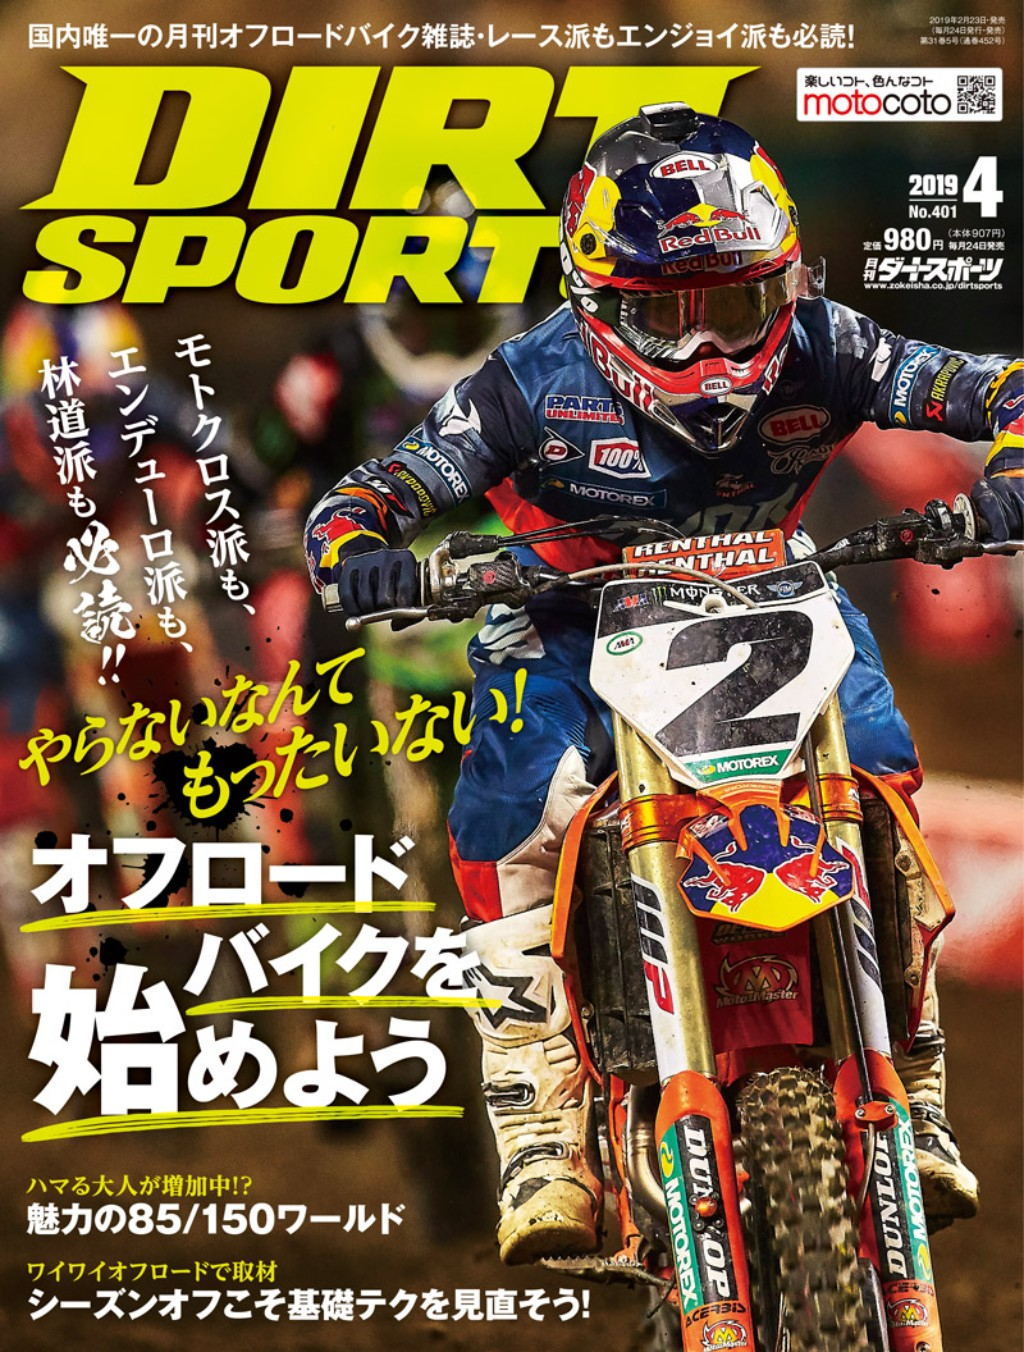 Zokeisha Monatsmagazin Dirt Sports Ausgabe April 2019